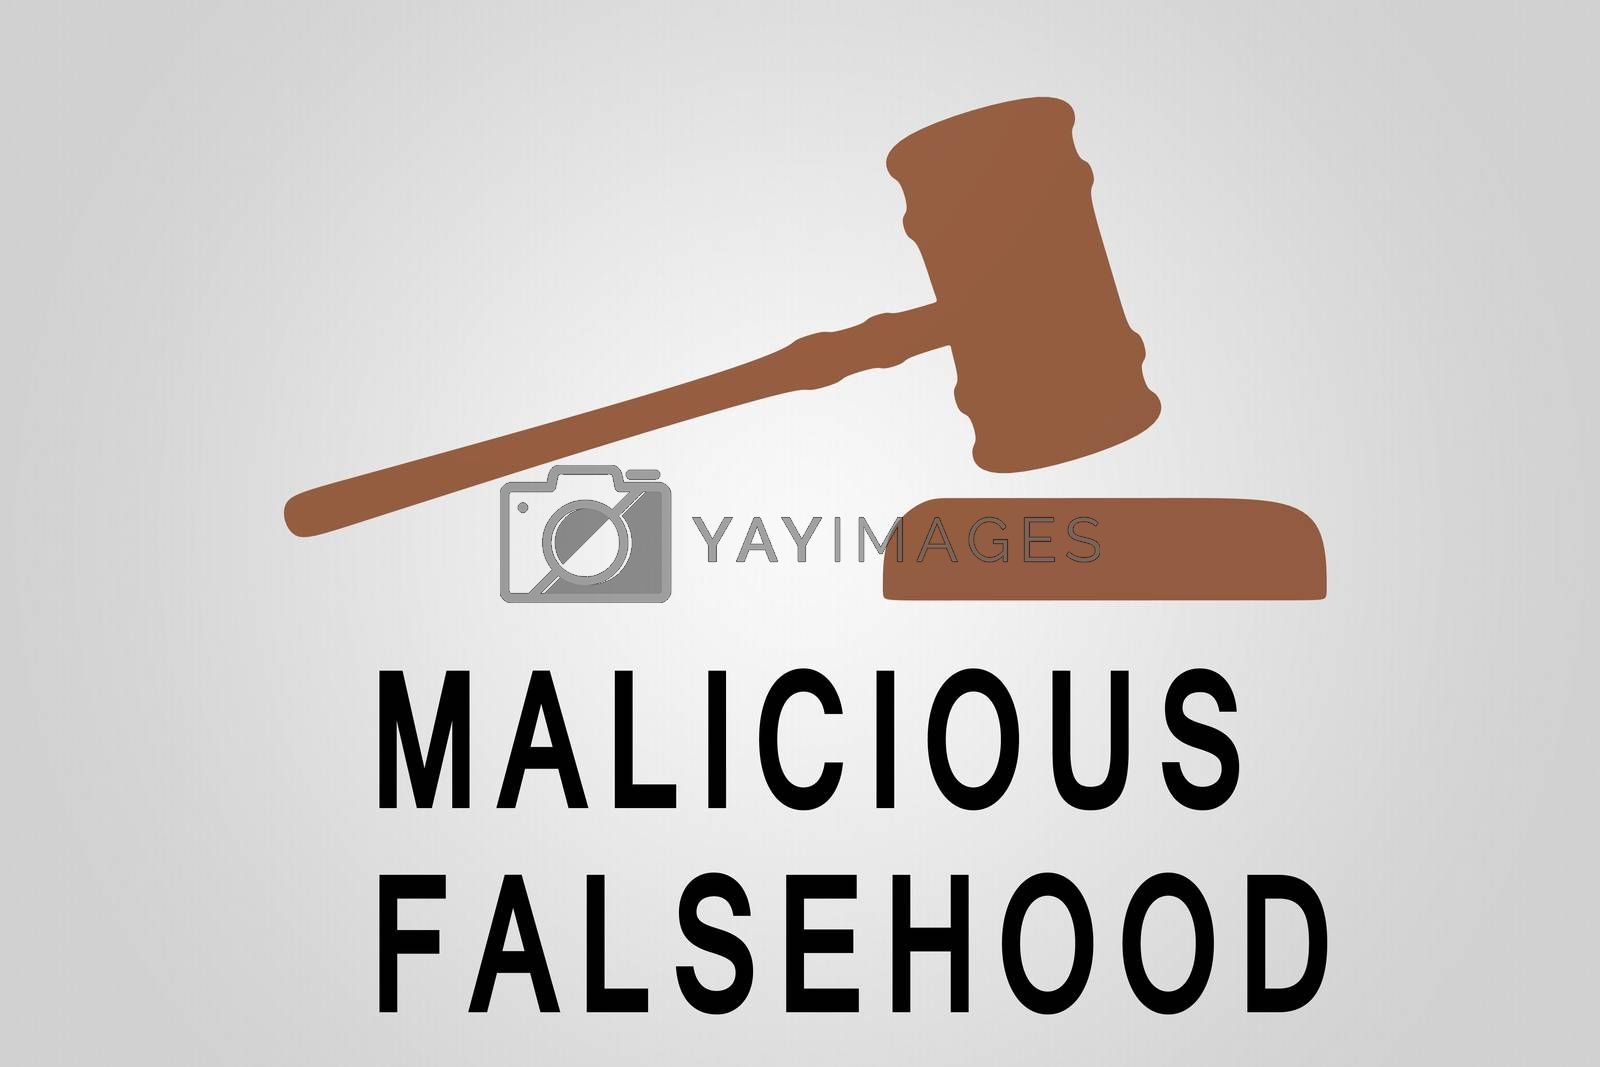 MALICIOUS FALSEHOOD sign concept illustration with judge gavel figures over a gray gradient